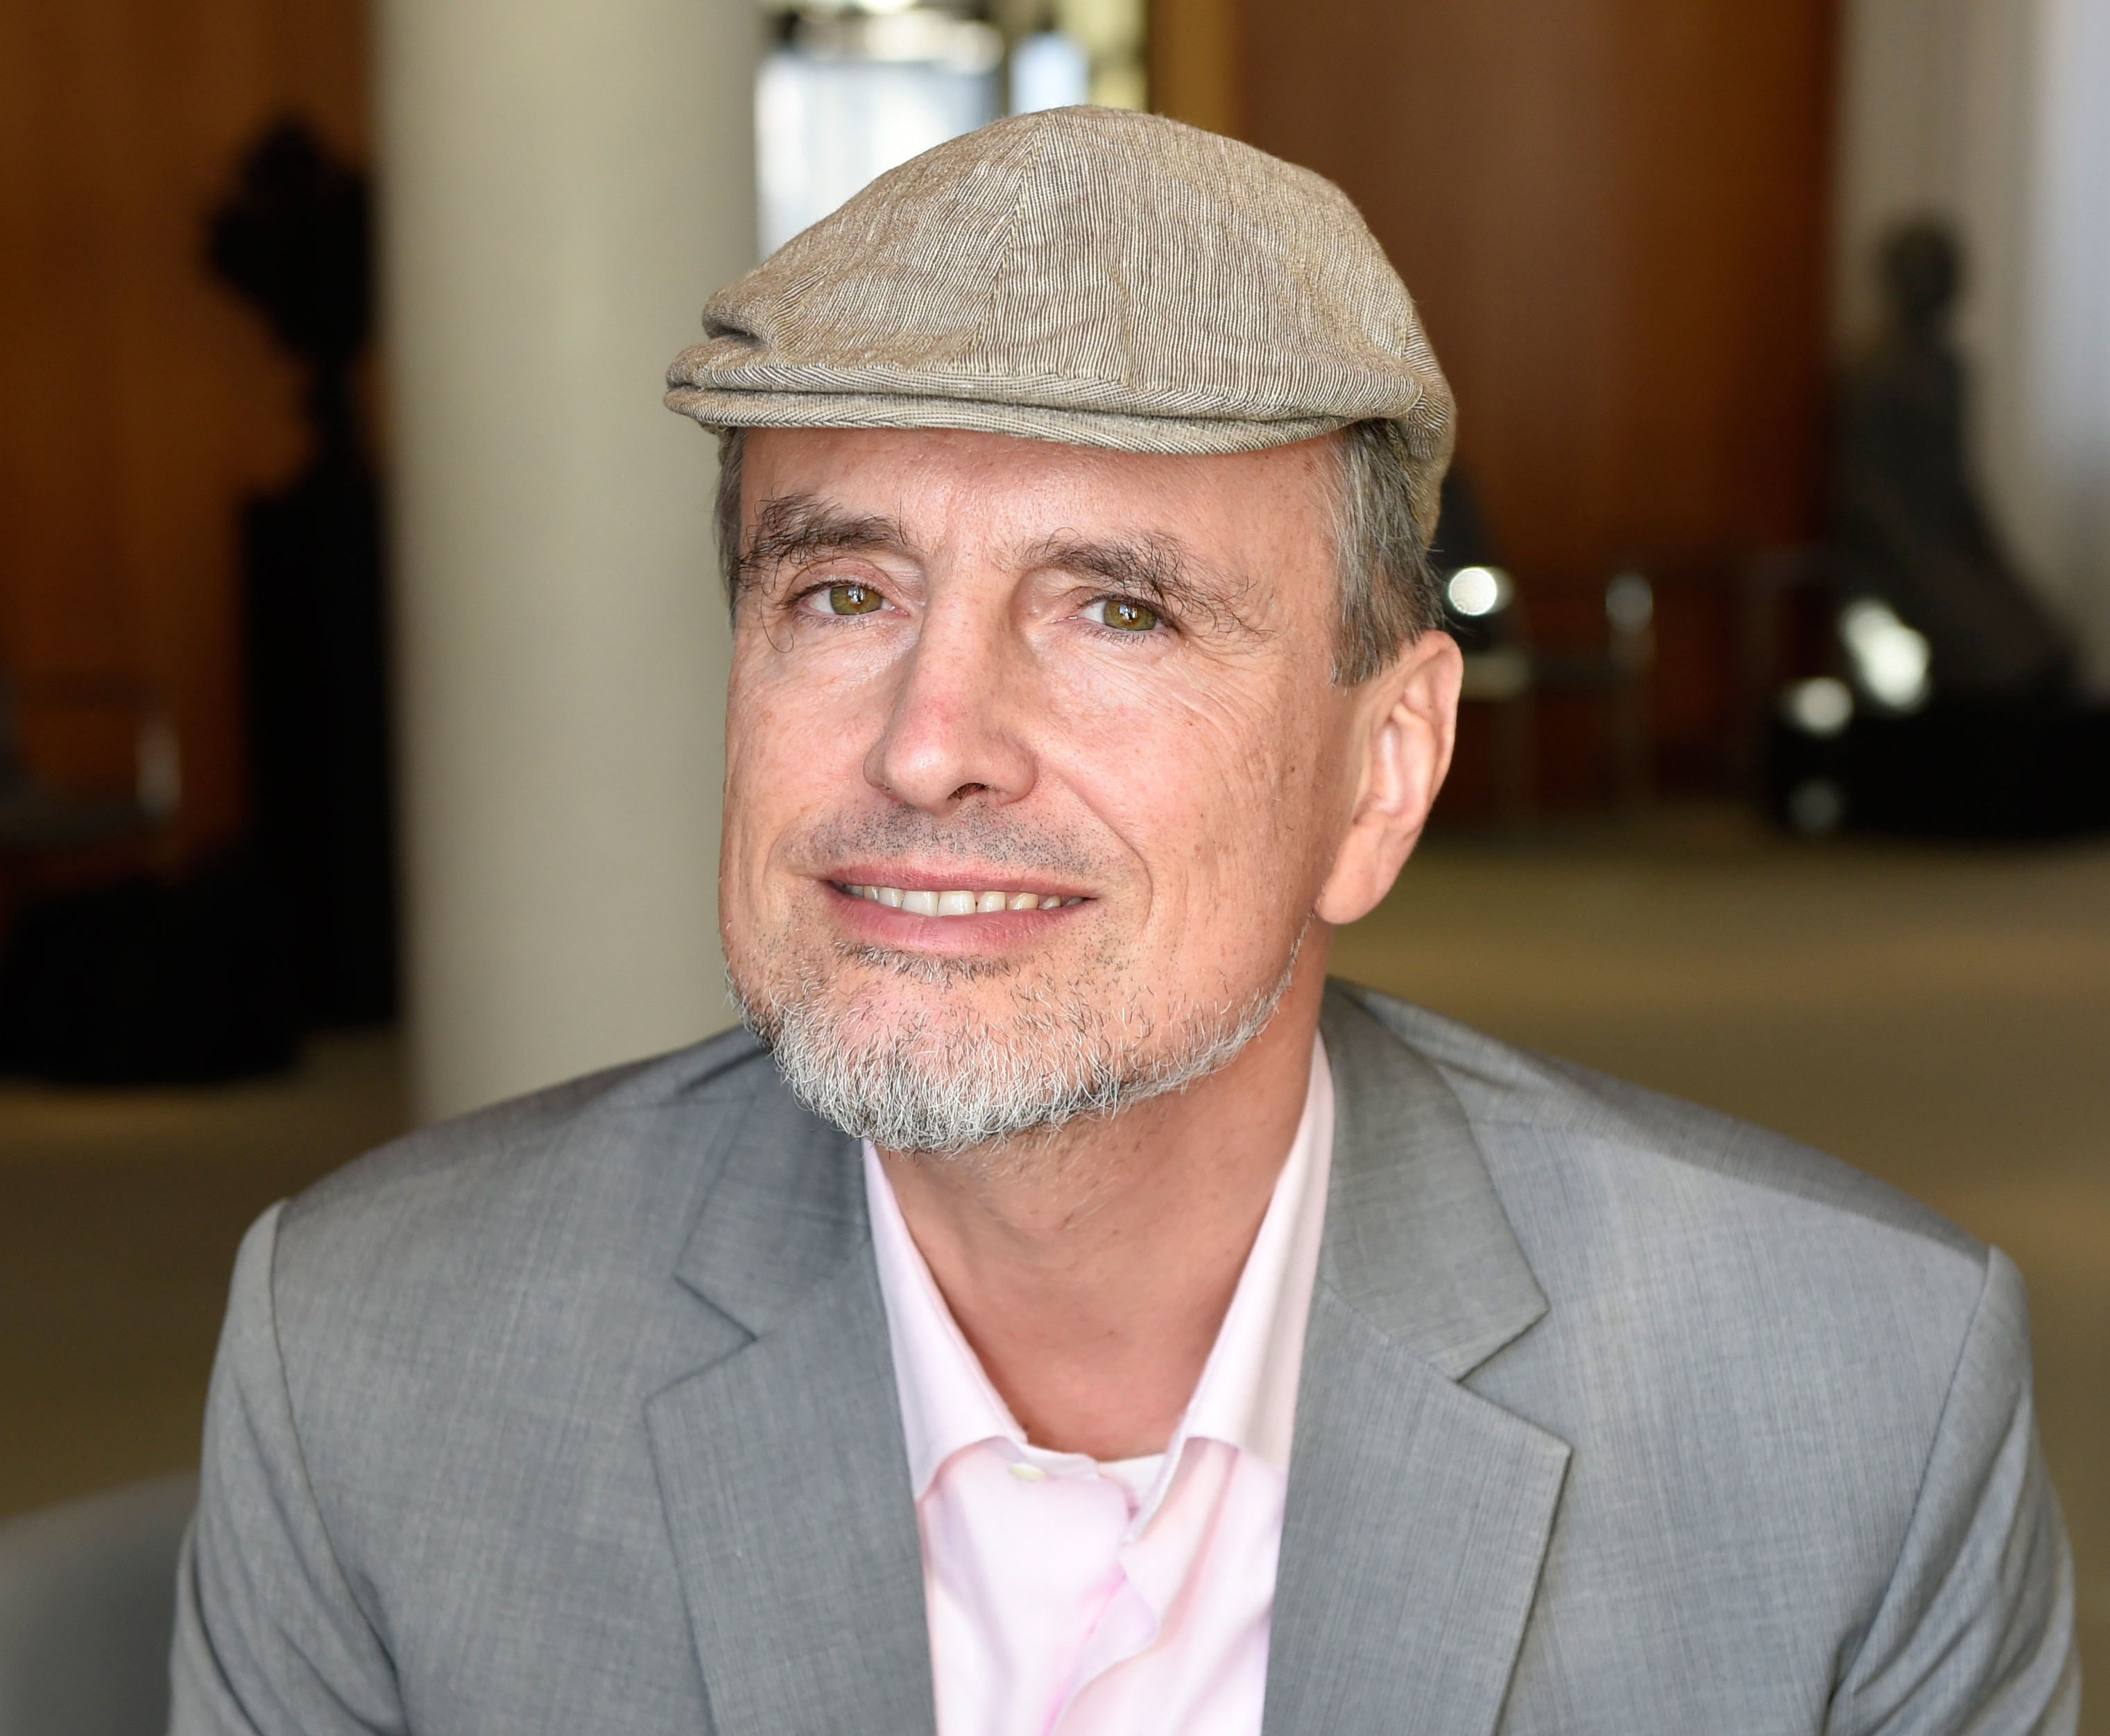 Jürgen Schmidhuber at the International Health Forum, 2015.